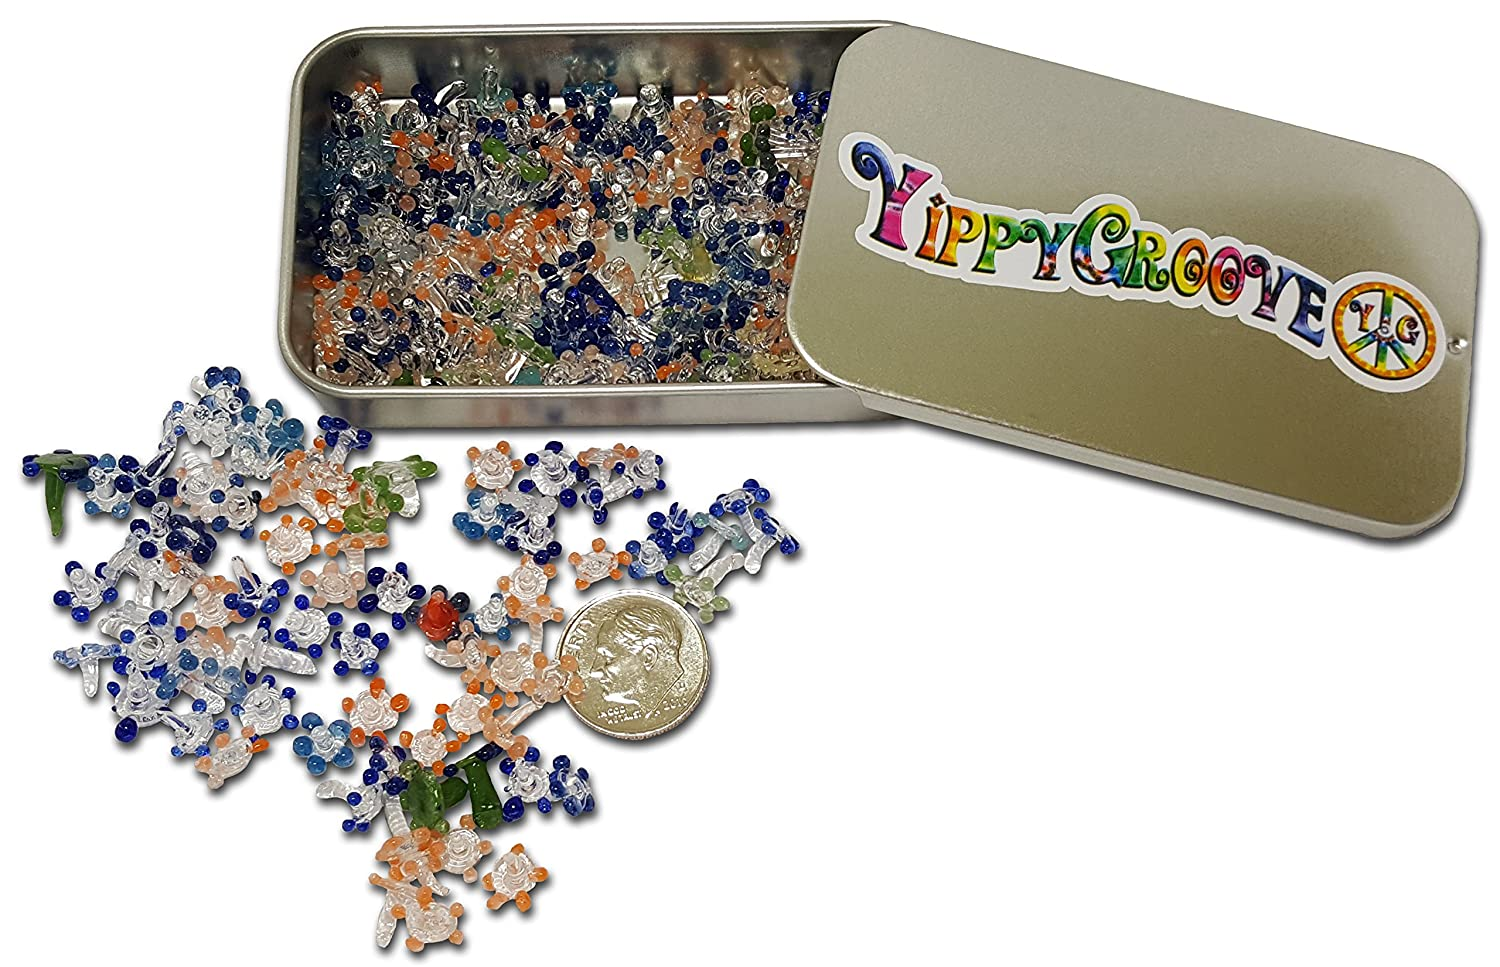 Glass Pipe Screen ~ 200, 100, 50, or 25 Pieces Exceptional Daisy Screens in a Limited Edition YippyGroove StashTin-for a Cleaner, Safer, Ash-Free Smoke (200)